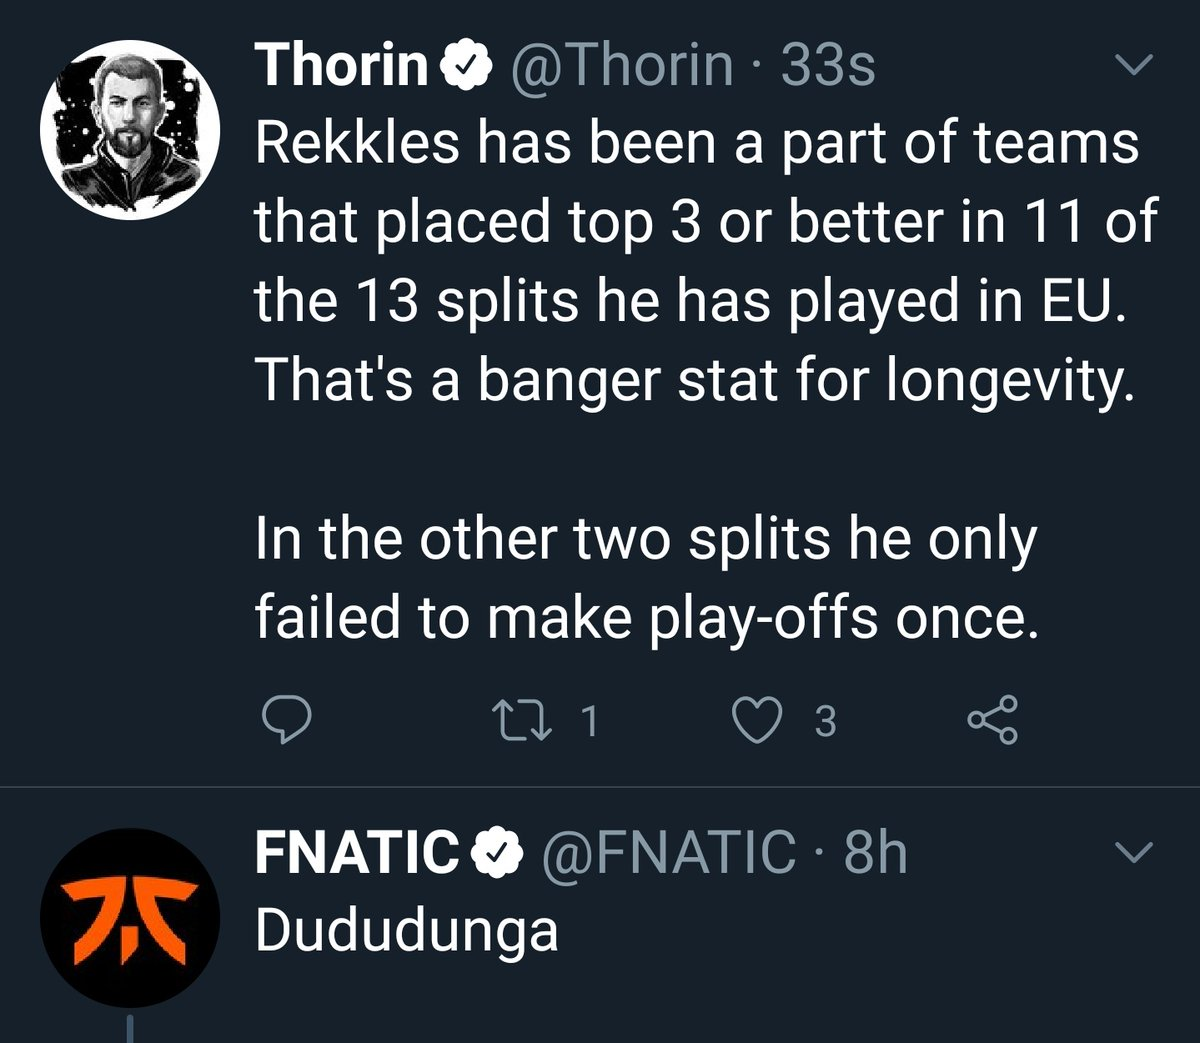 Thorin On Twitter Rekkles Has Been A Part Of Teams That Placed Top 3 Or Better In 11 Of The 13 Splits He Has Played In Eu That S A Banger Stat For I was voted esports journalist of the year for 2017 at the esports industry. thorin on twitter rekkles has been a